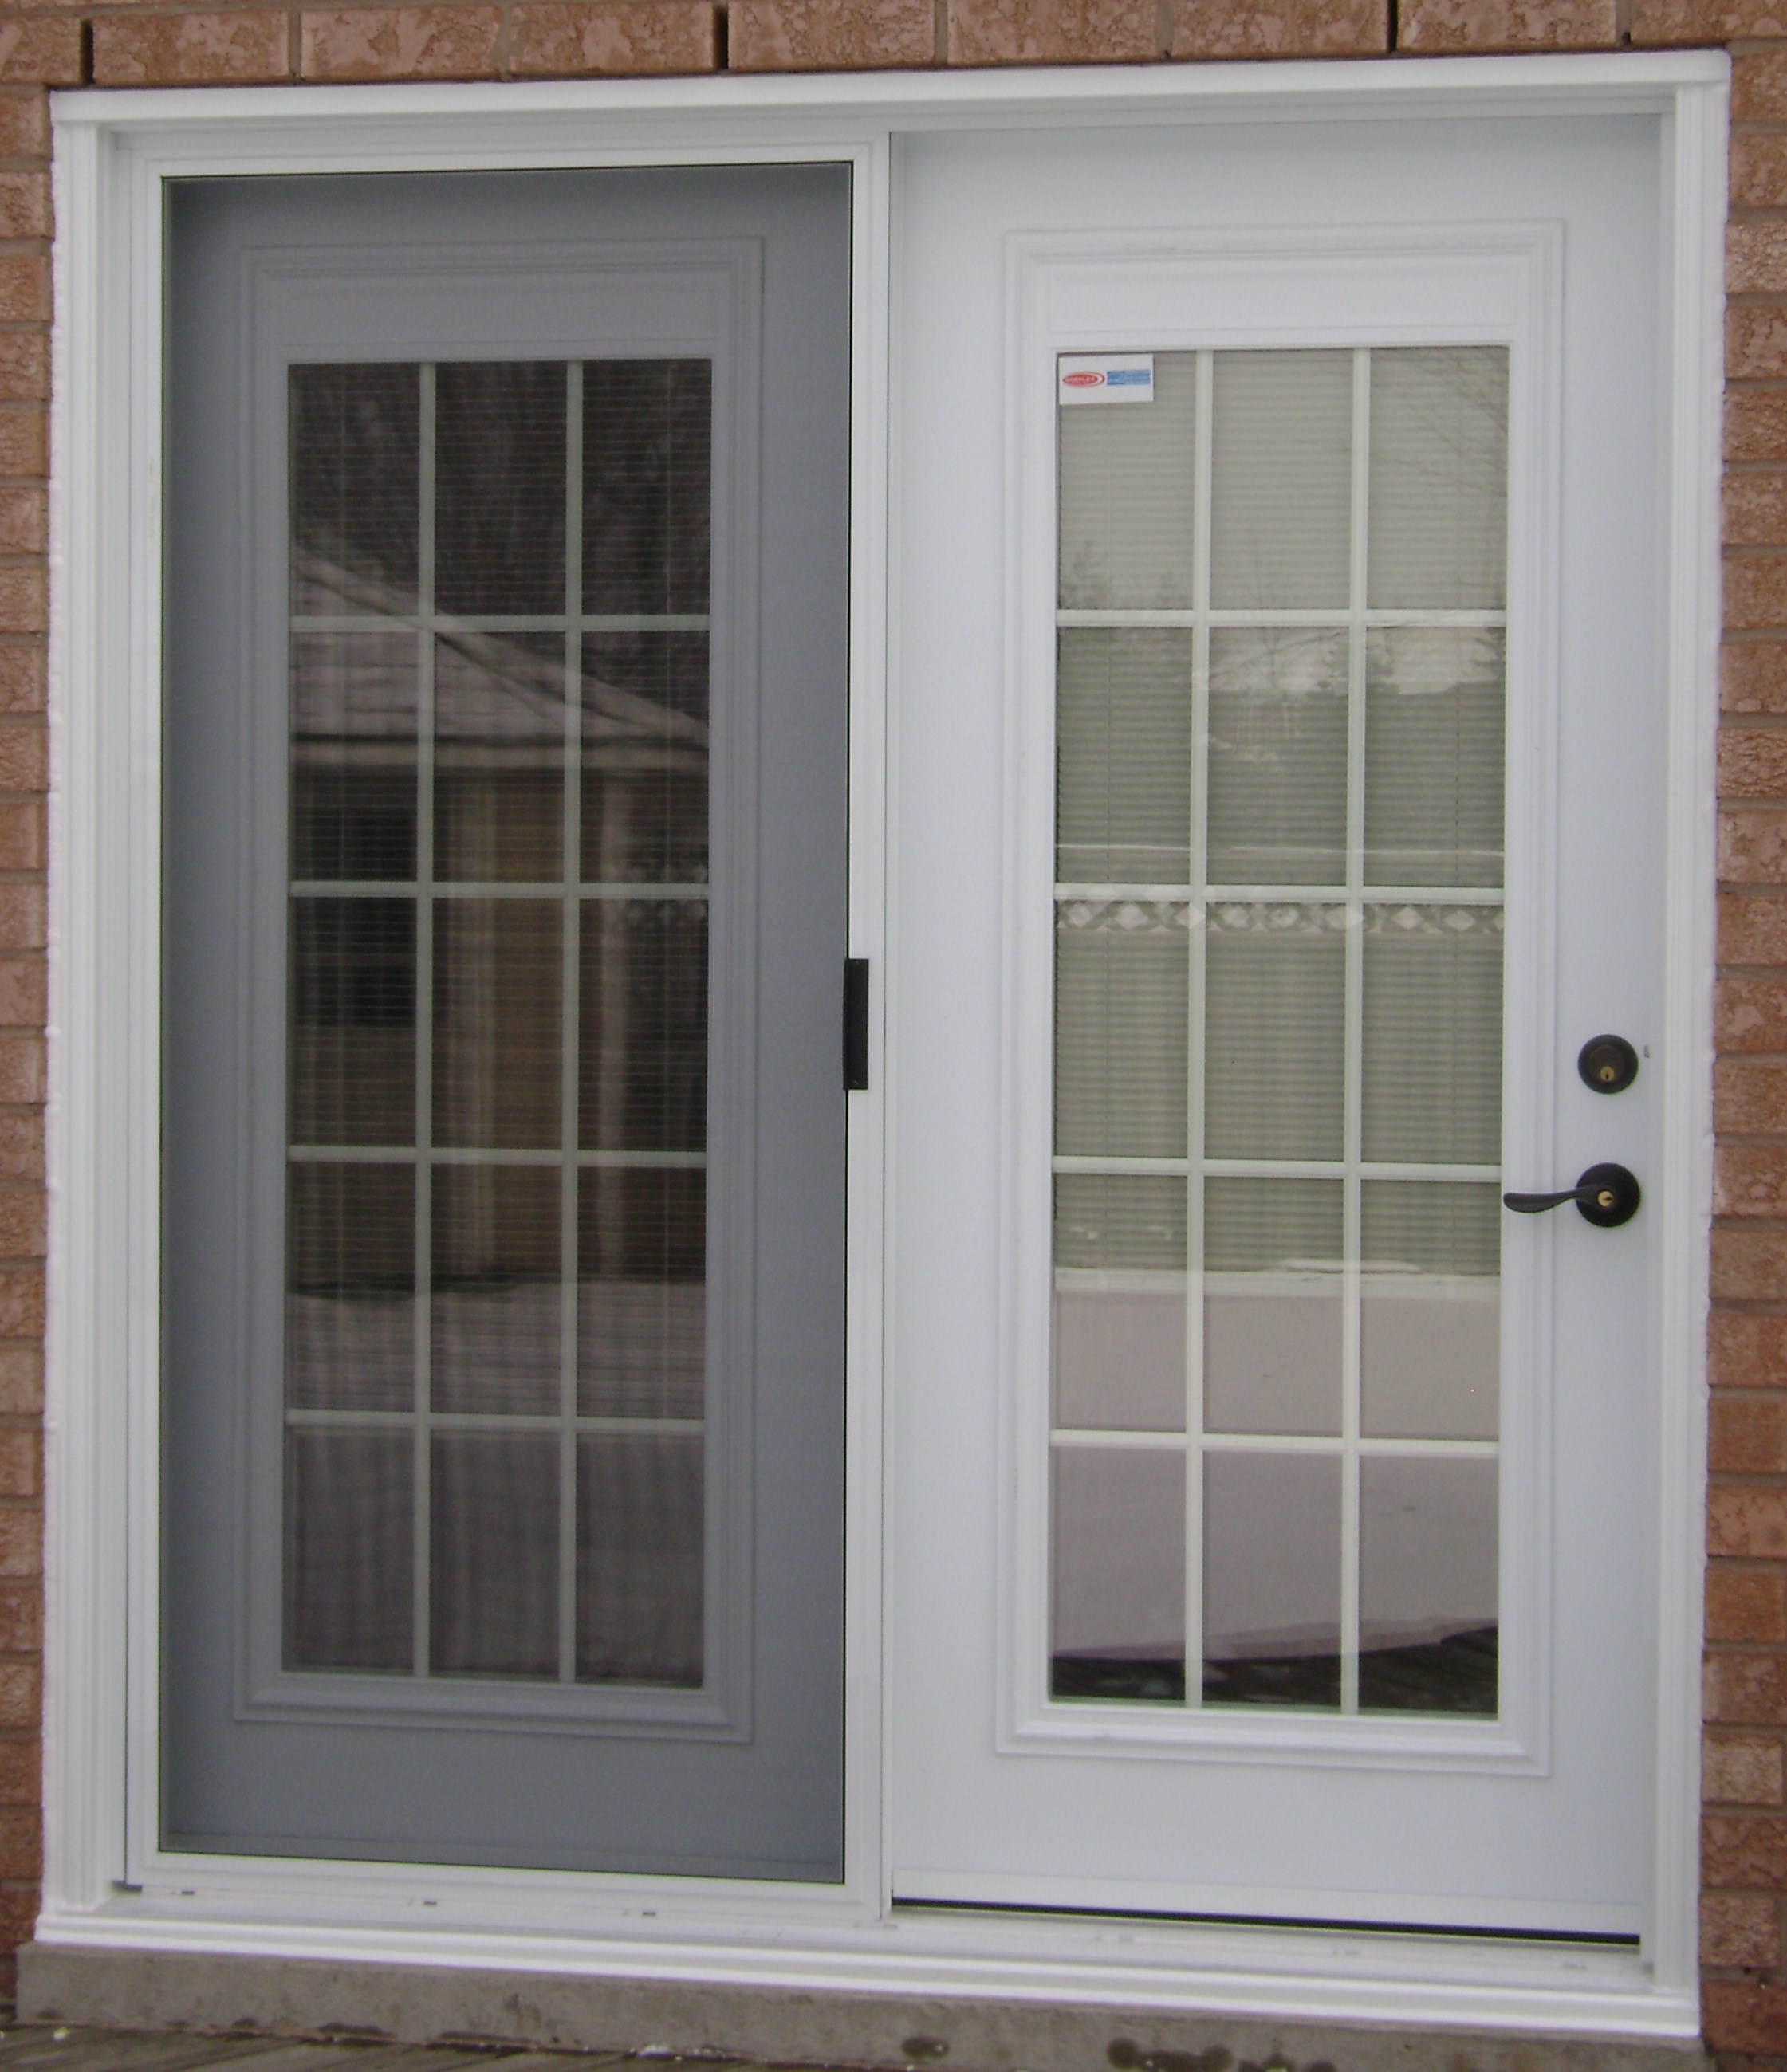 French Doors u0026 Garden Doors Mississauga | French Garden Doors | Supreme Windows & French Doors u0026 Garden Doors Mississauga | French Garden Doors ...